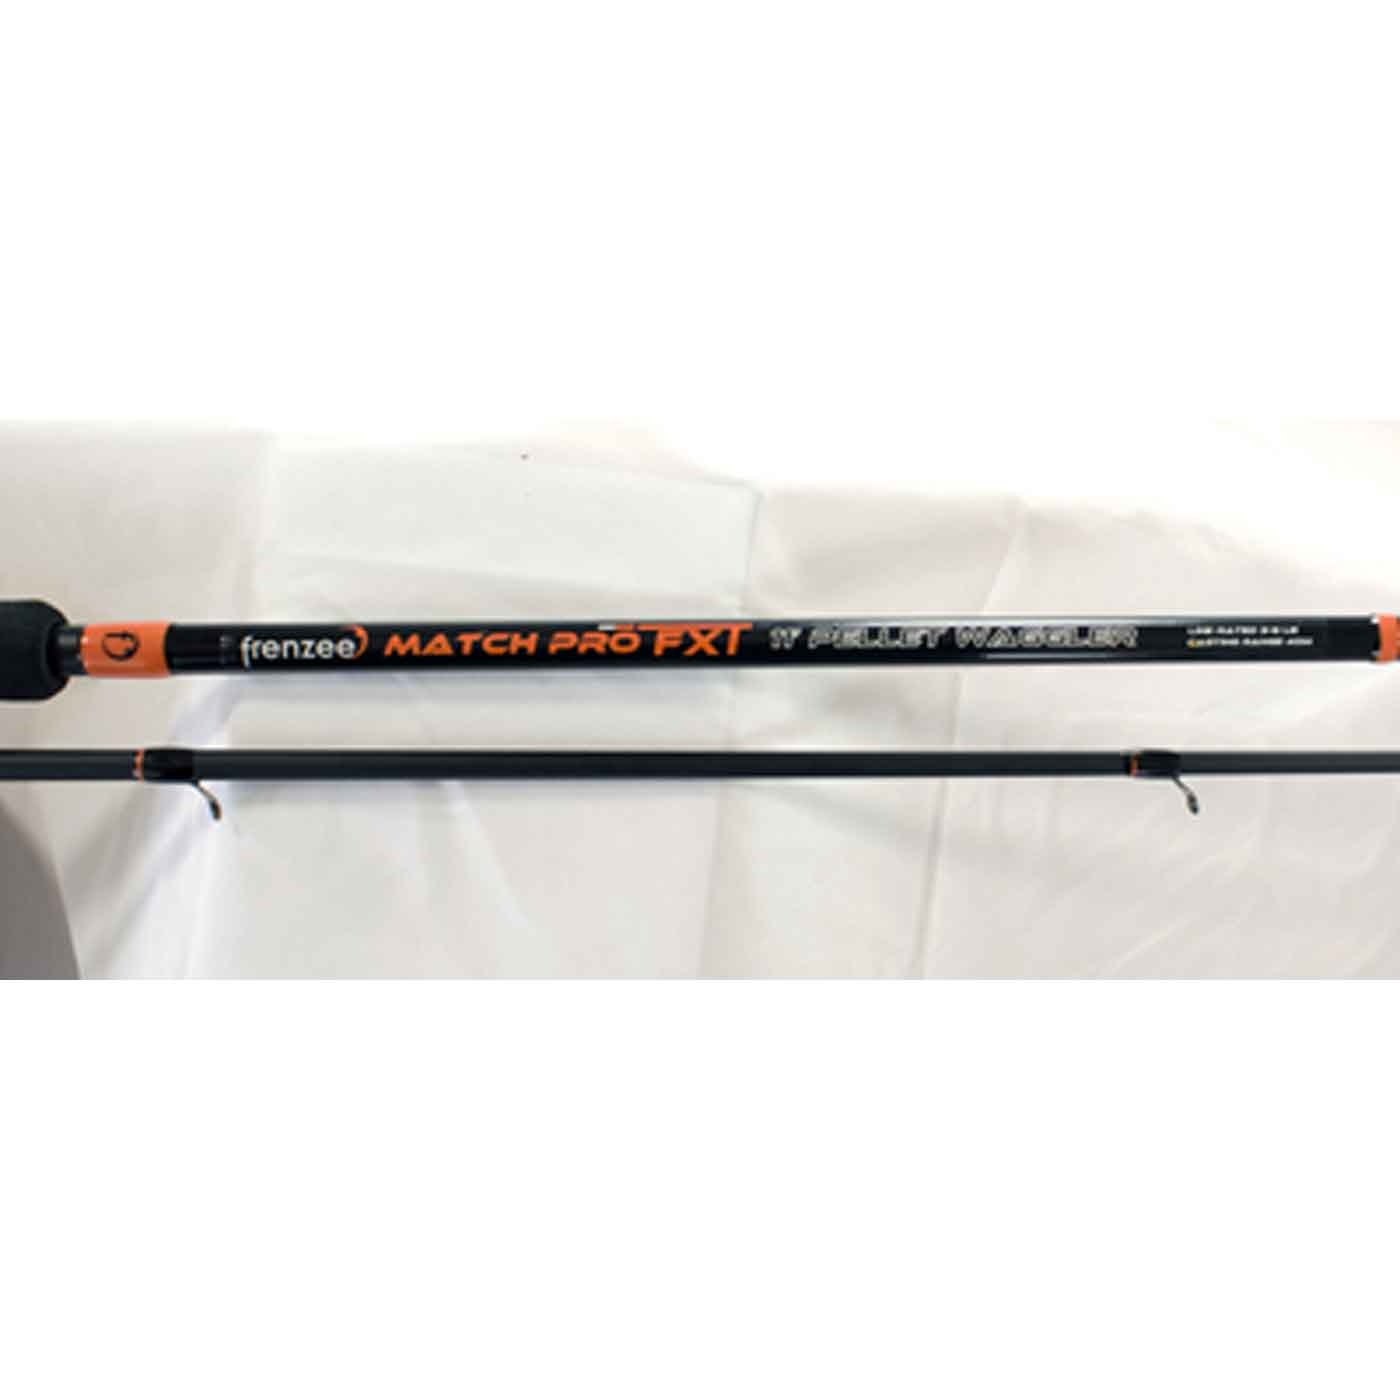 Frenzee Match Pro FXT 11ft Pellet Waggler